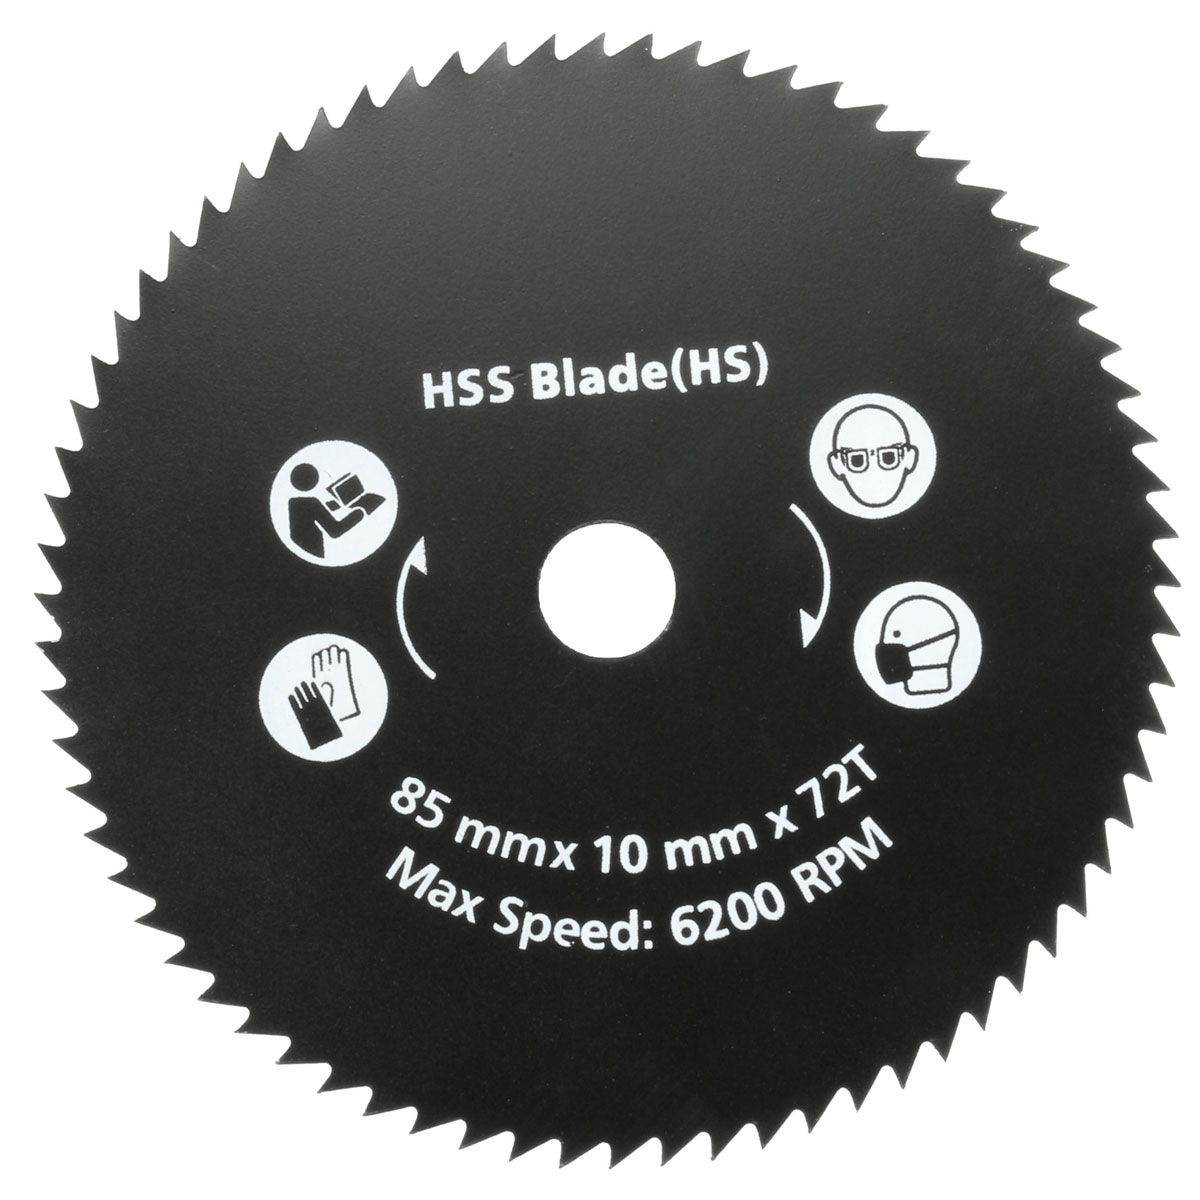 Newest 1PC 85mm 72T HSS Circular Saw Blade Cutting Disc Wheel For Worx WorxSaw Wood Metal Working Tools Hot Sale